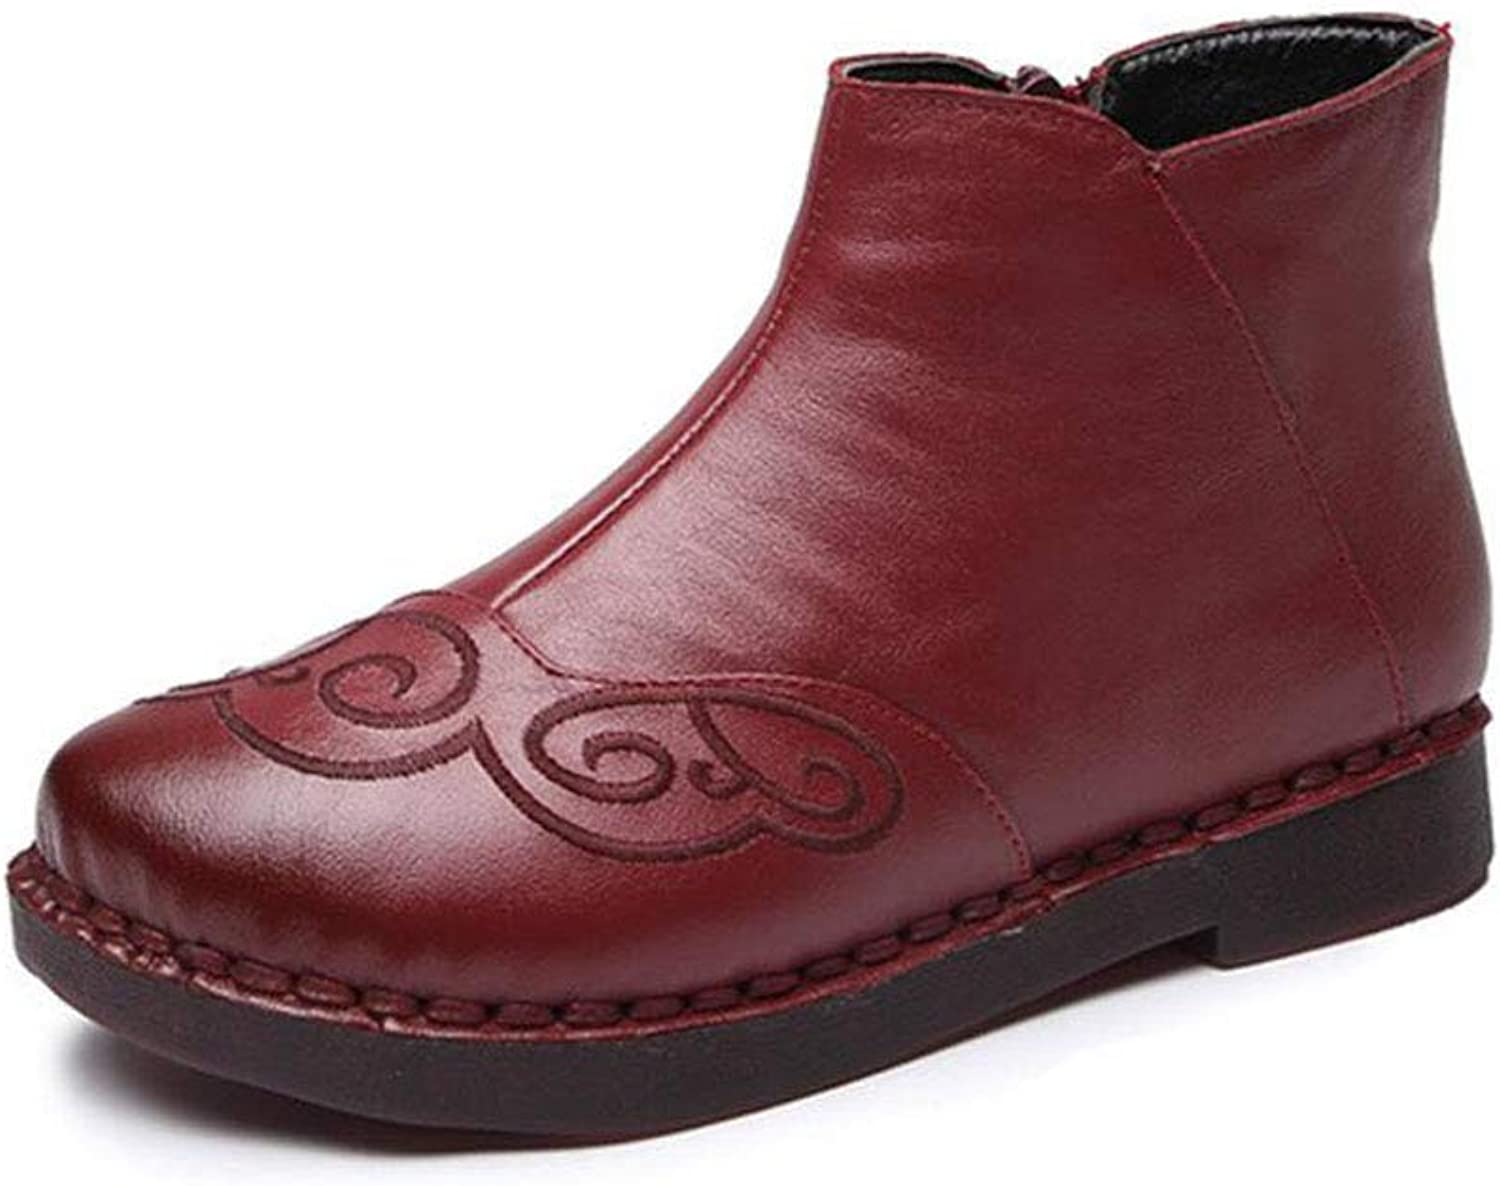 Women Boots, Fall Winter Vintage Style Genuine Leather Women Boots Flat Booties Leather Women's shoes Ankle Boots (color   Red, Size   37)